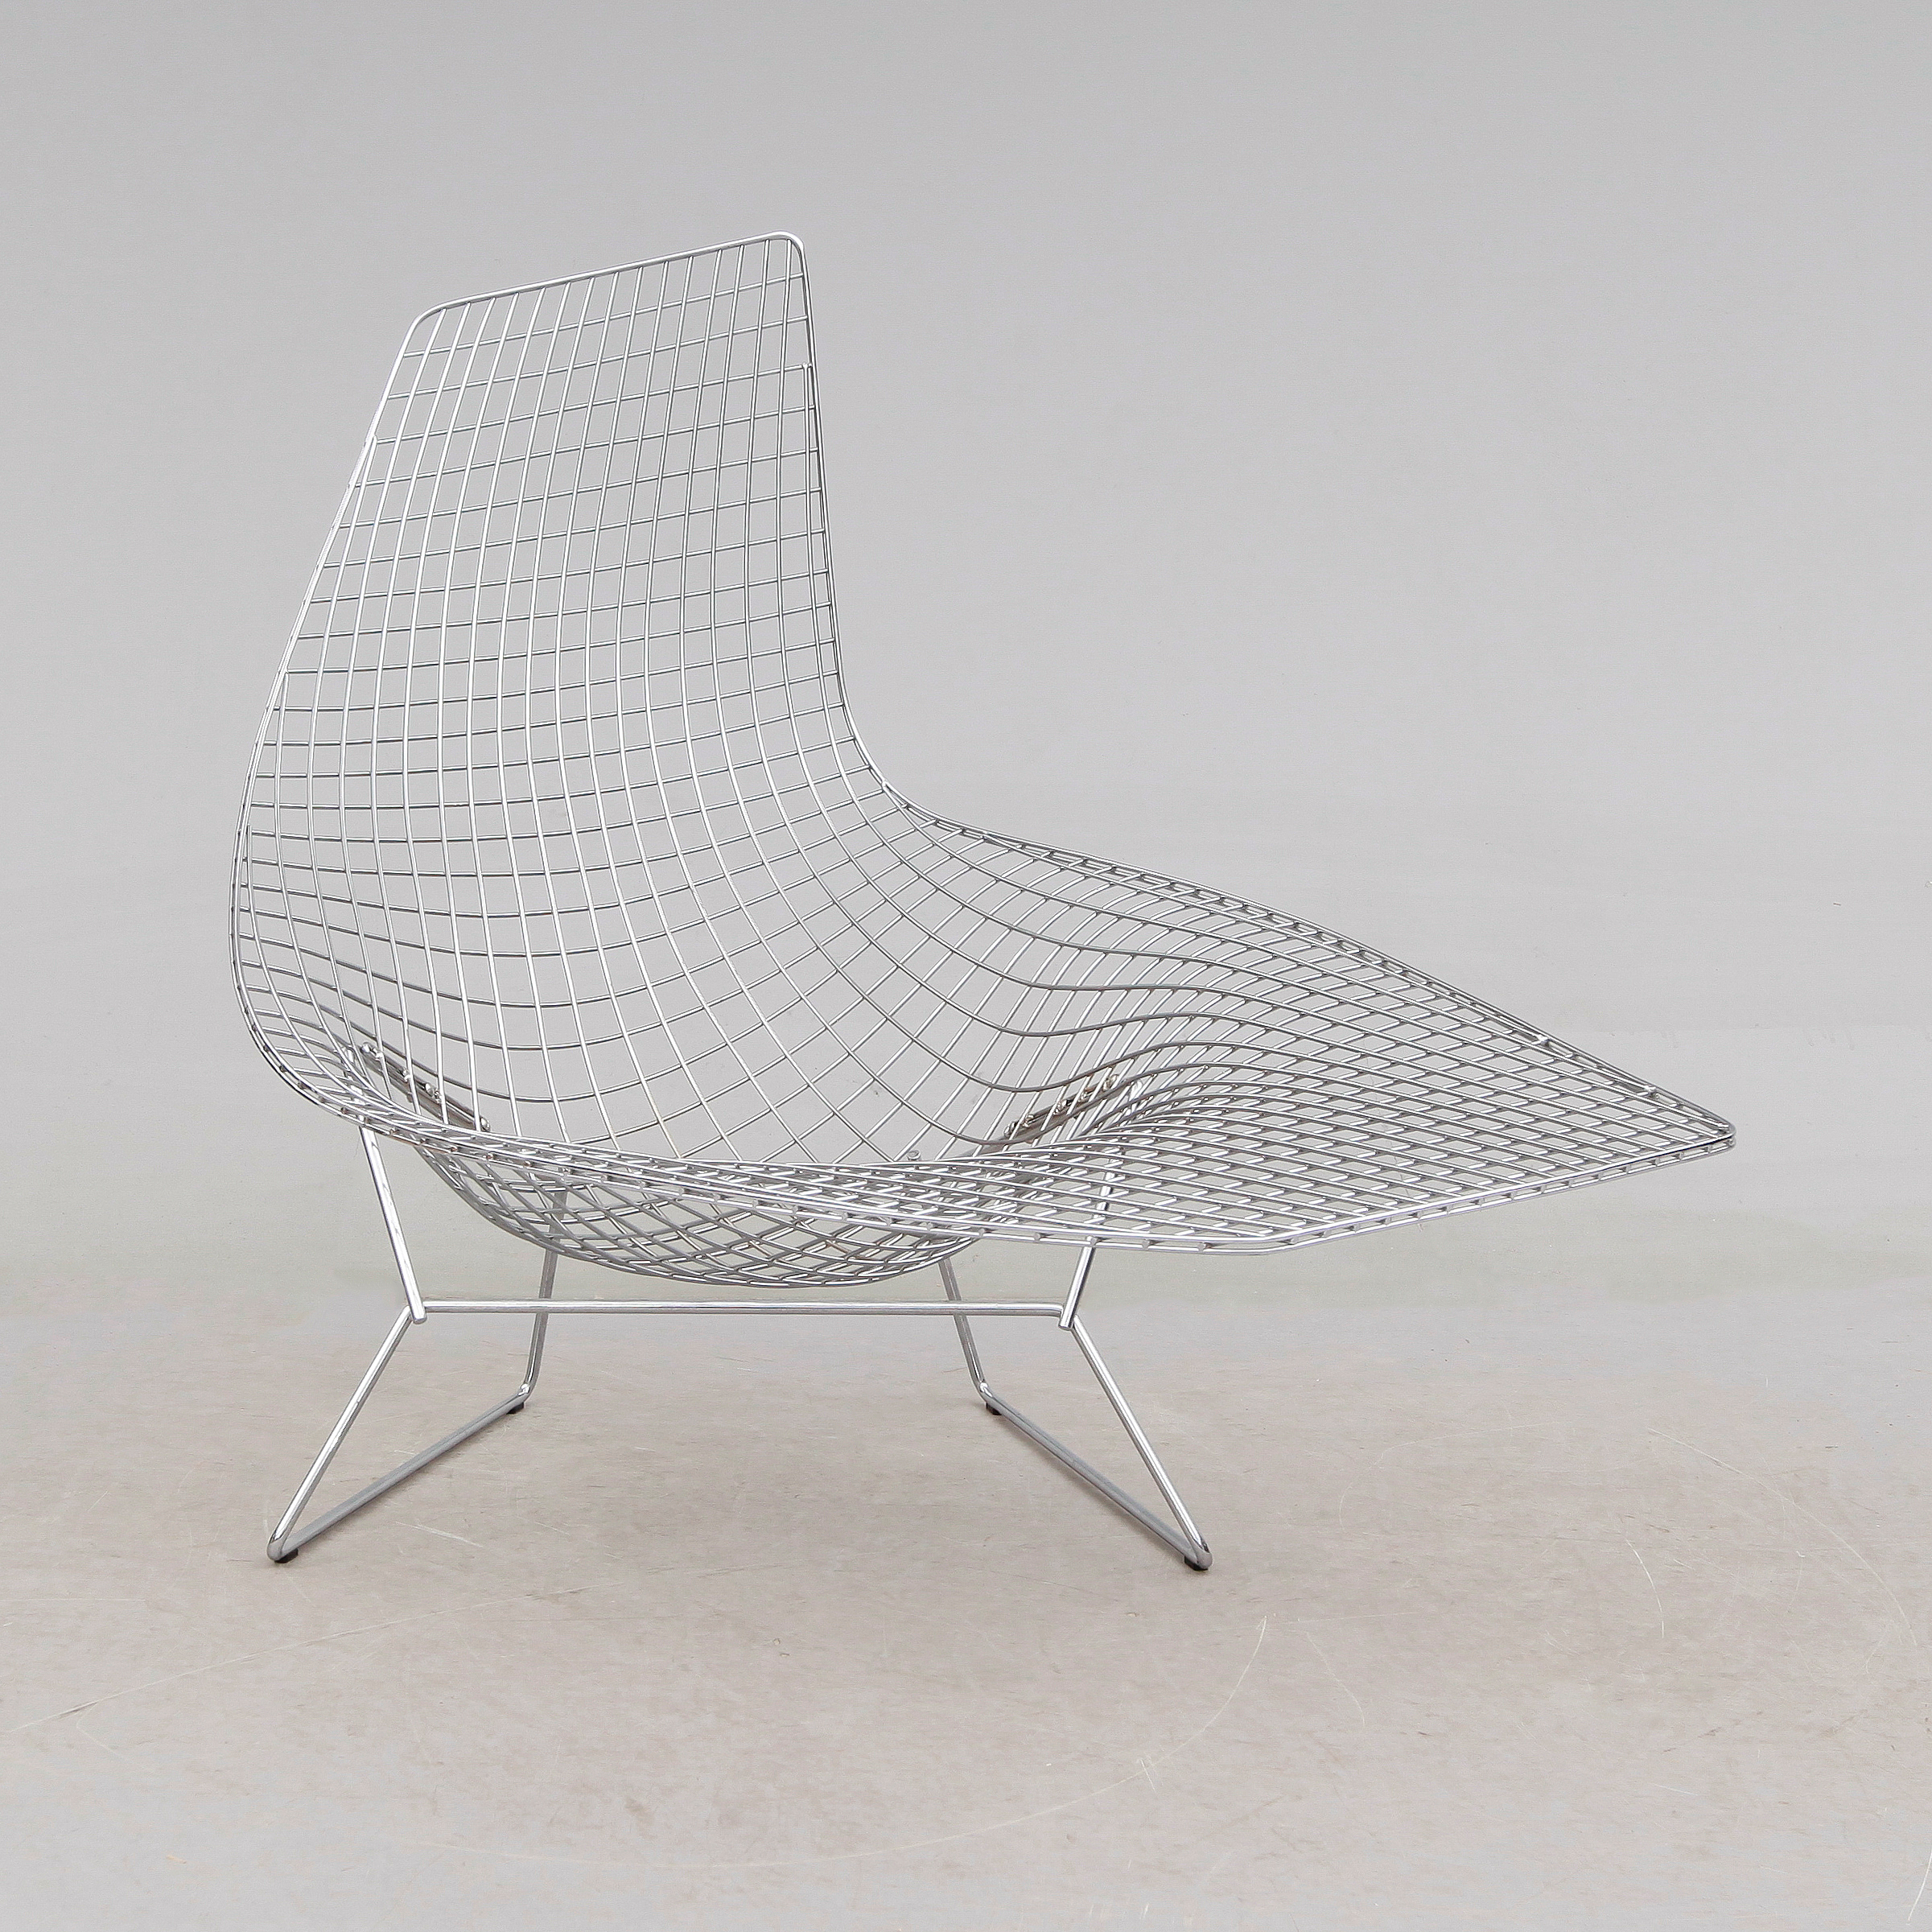 Vilstol Asymmetric Chaise Harry Bertoia Knoll International